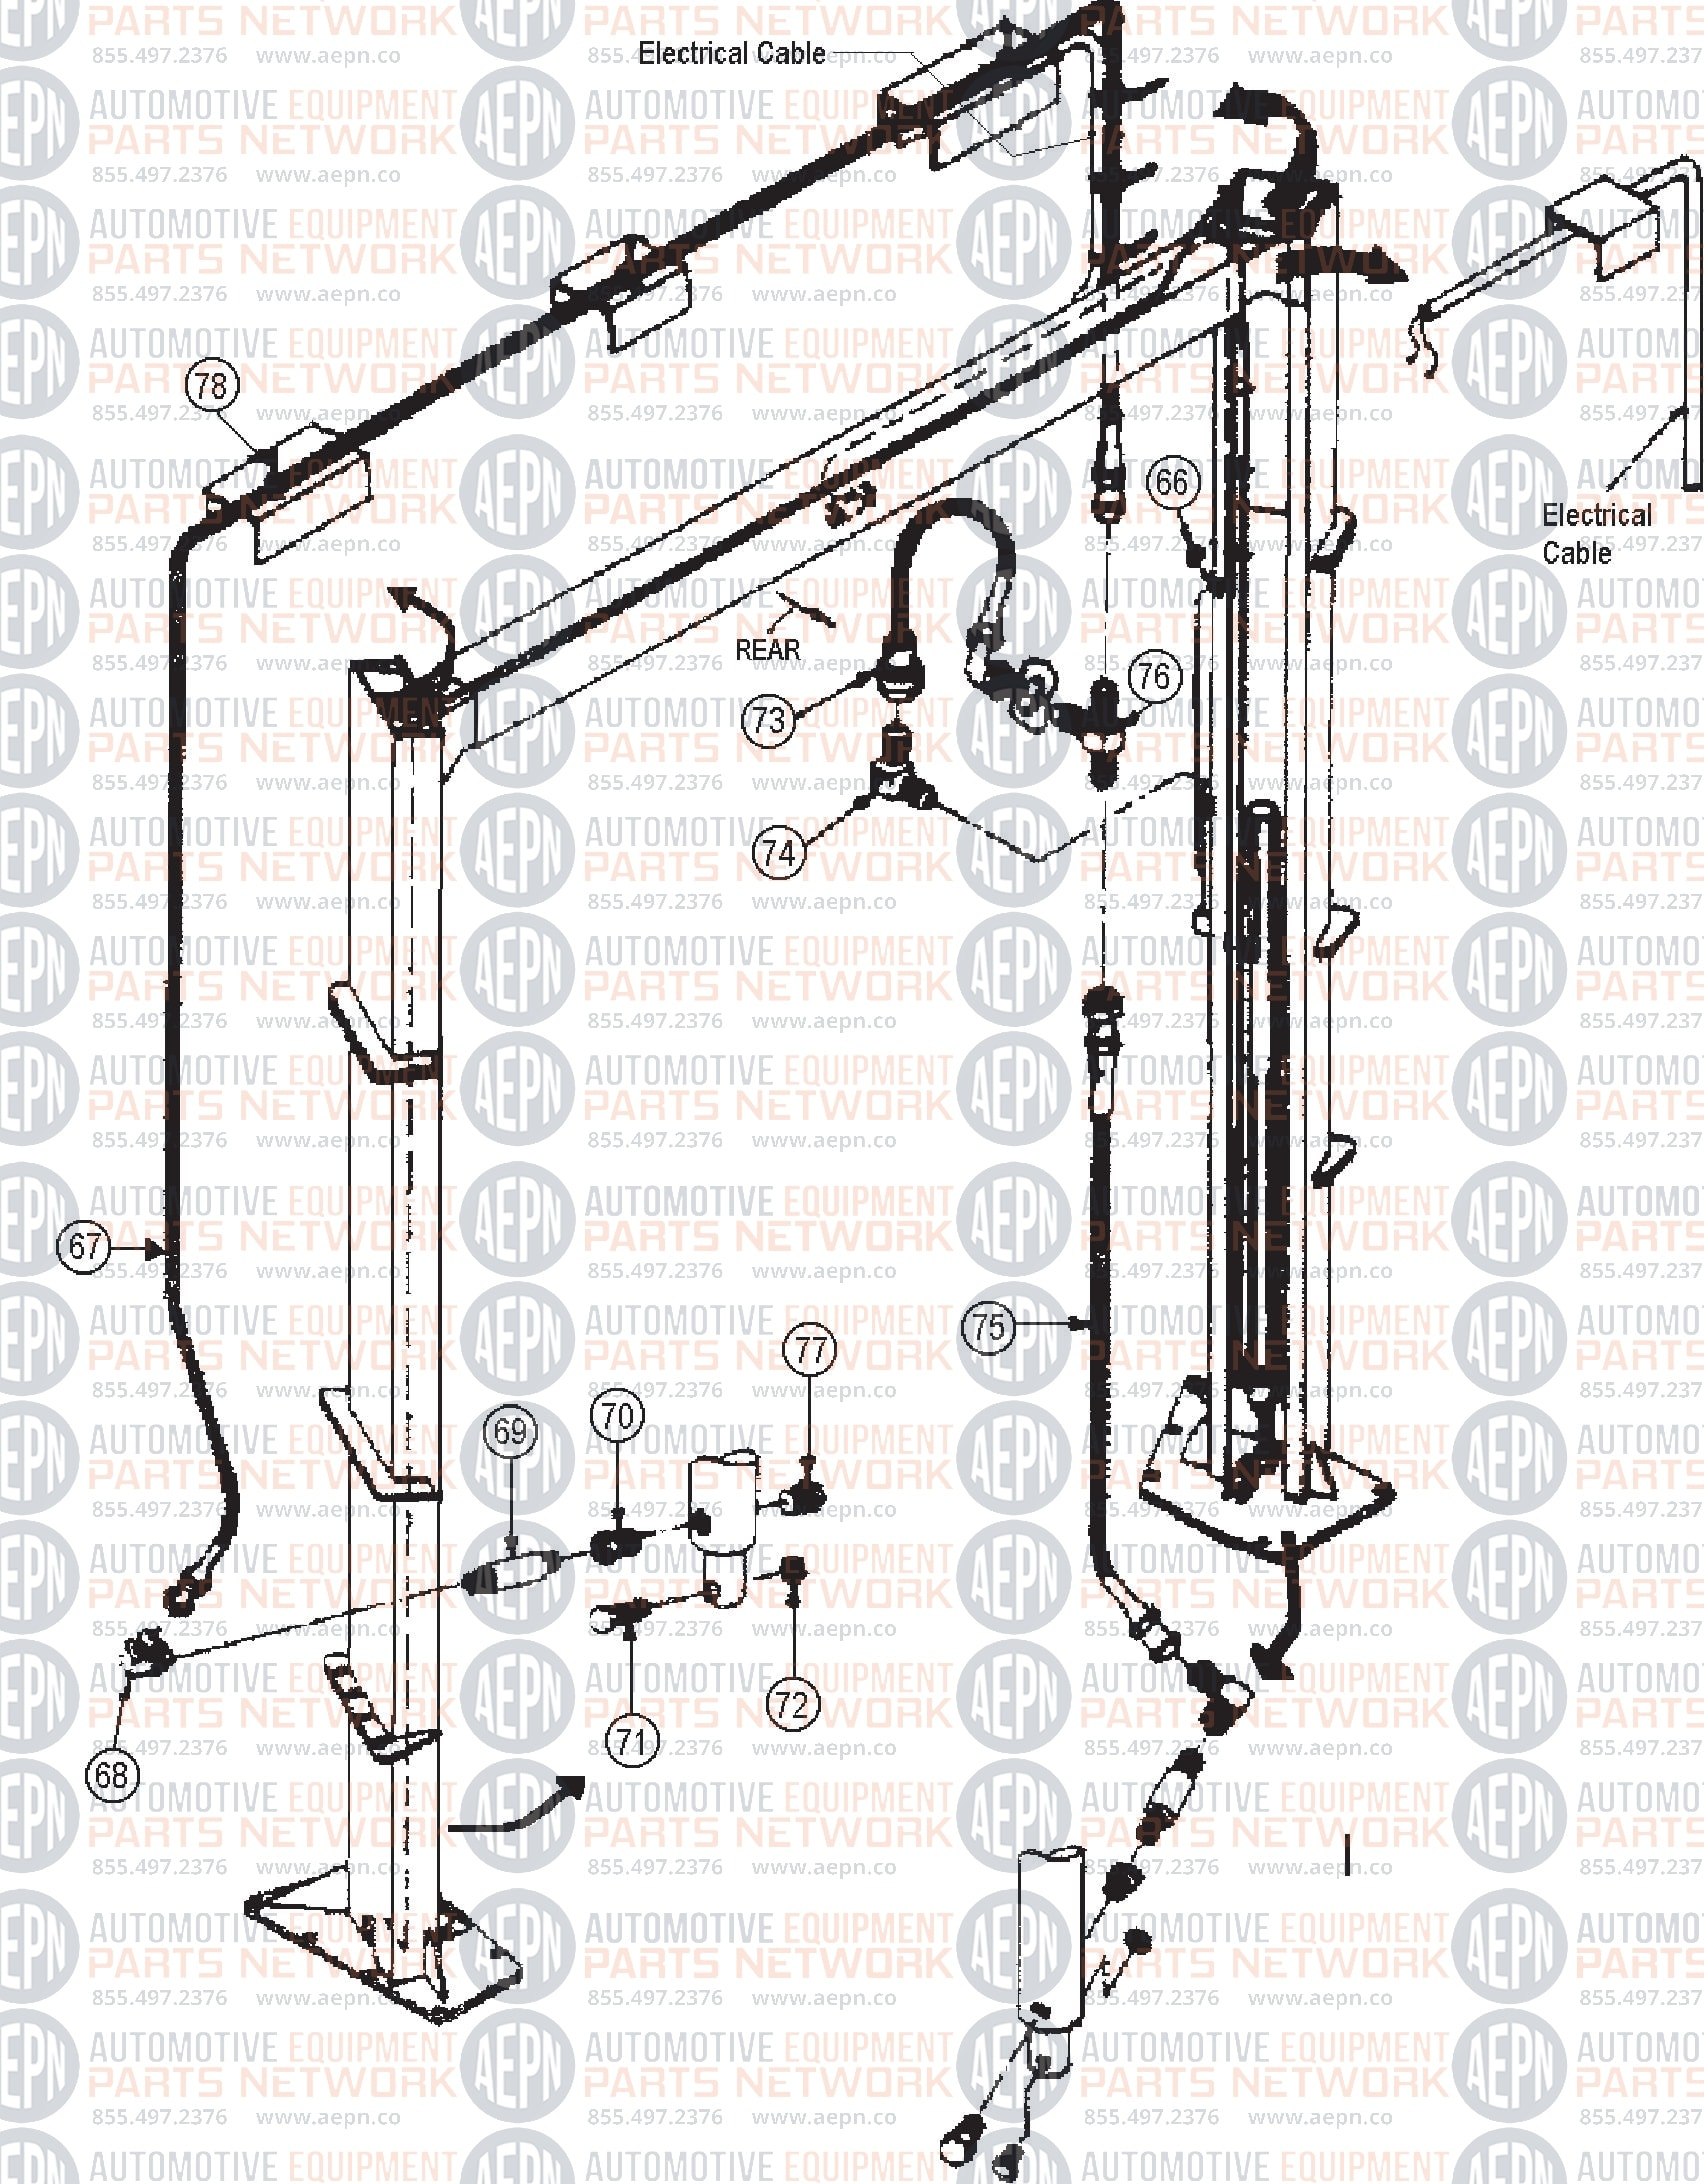 Ammco Ben Pearson Al 7 Old Style Parts Breakdown Chassis Engineering Schematics Click On The Part Number For More Information